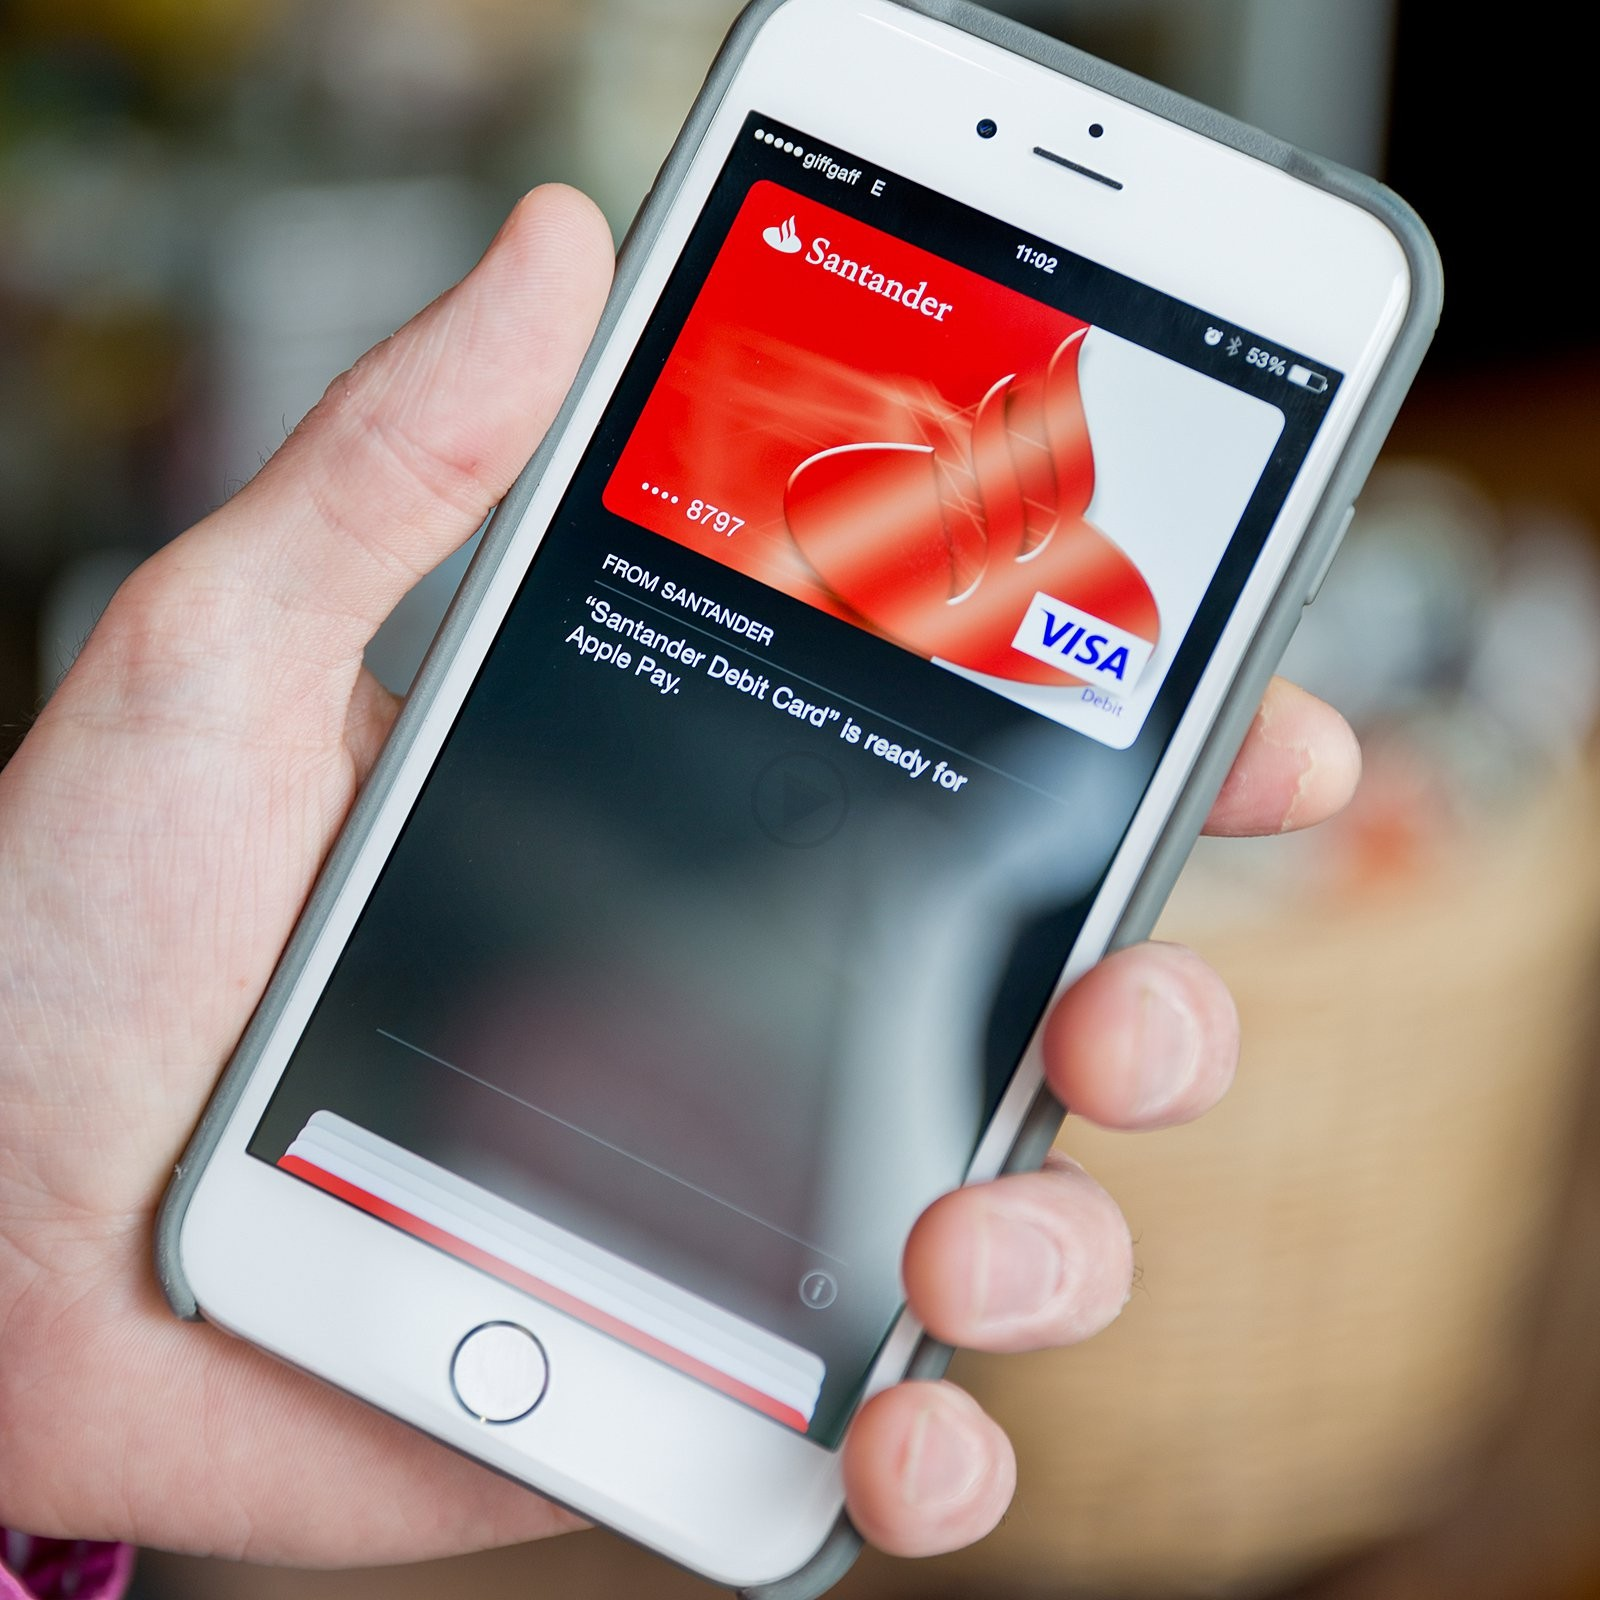 Promotions Offered on Transactions Made through Apple Pay